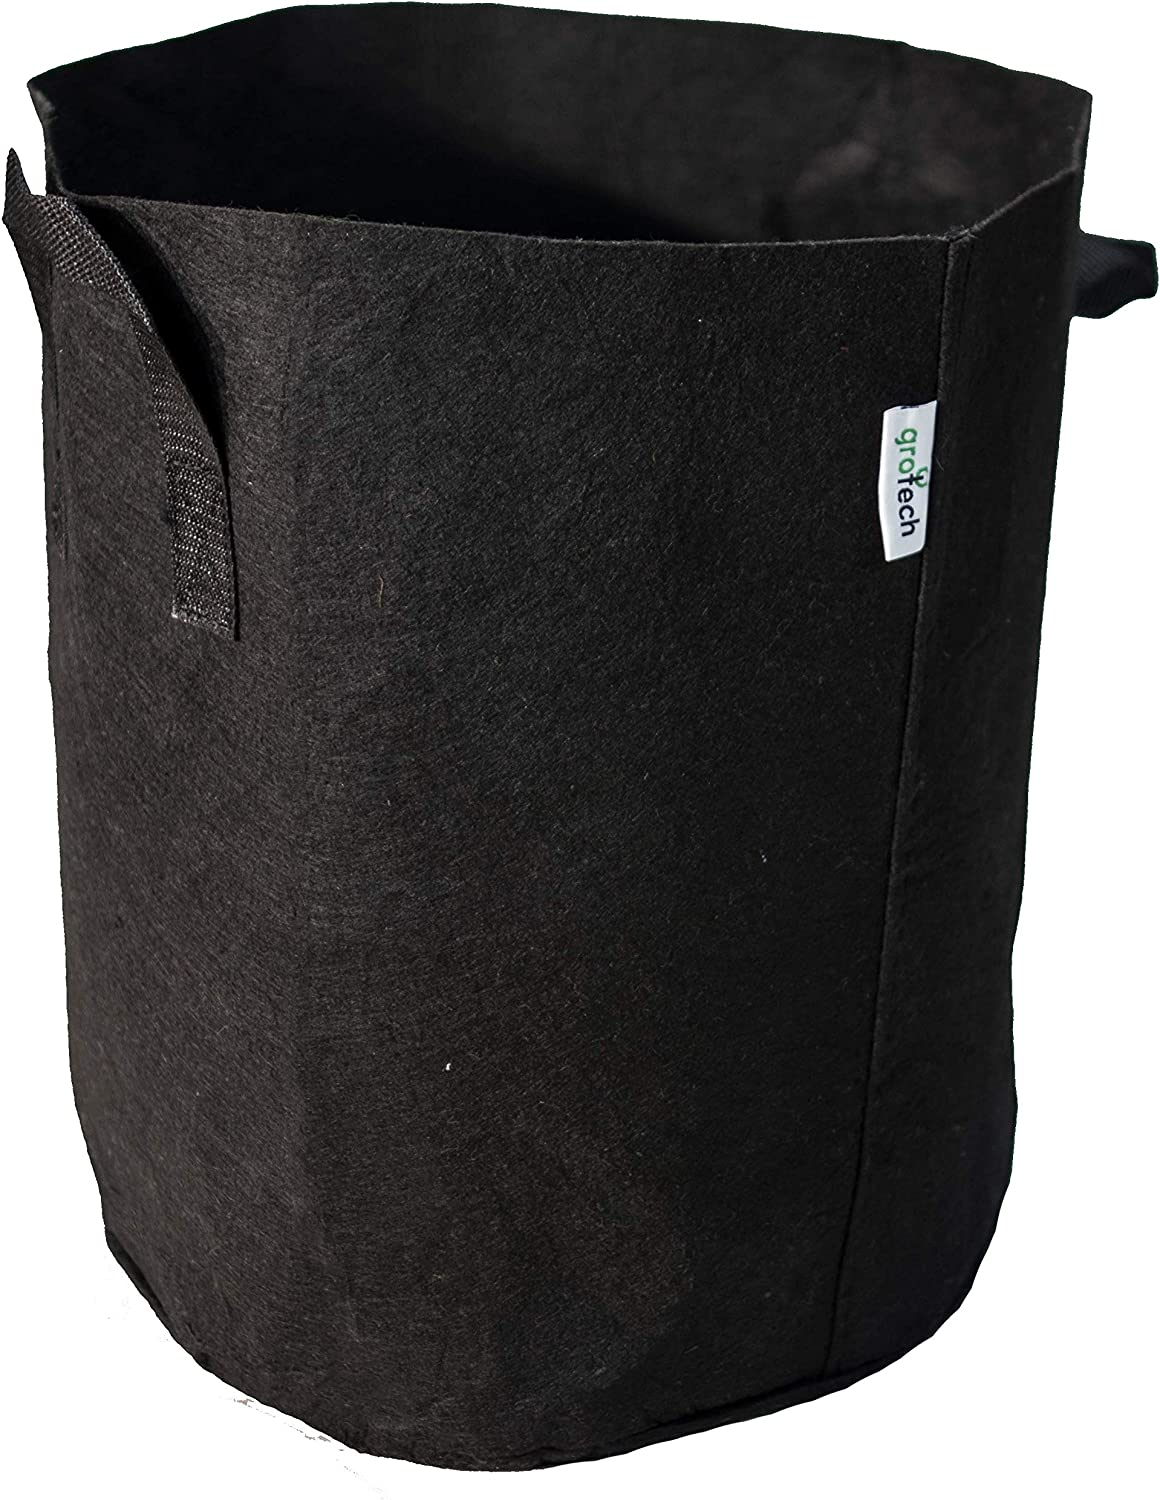 10-Pack 8 Max 83% OFF Gallon Grow Bags Nonwoven Fabric Pots Plant New mail order Aeration